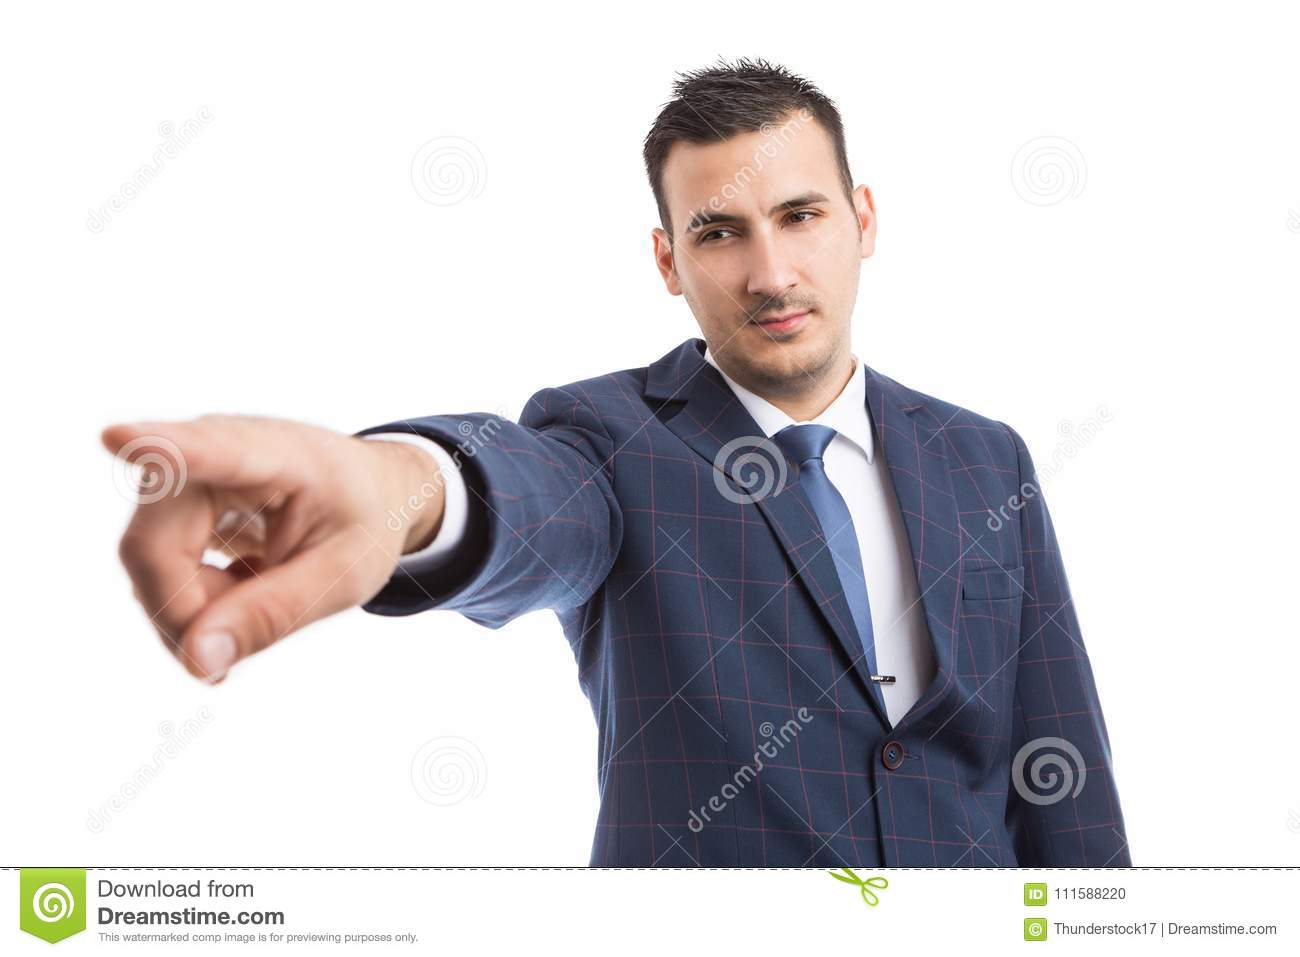 Boss manager showing fired dismiss gesture